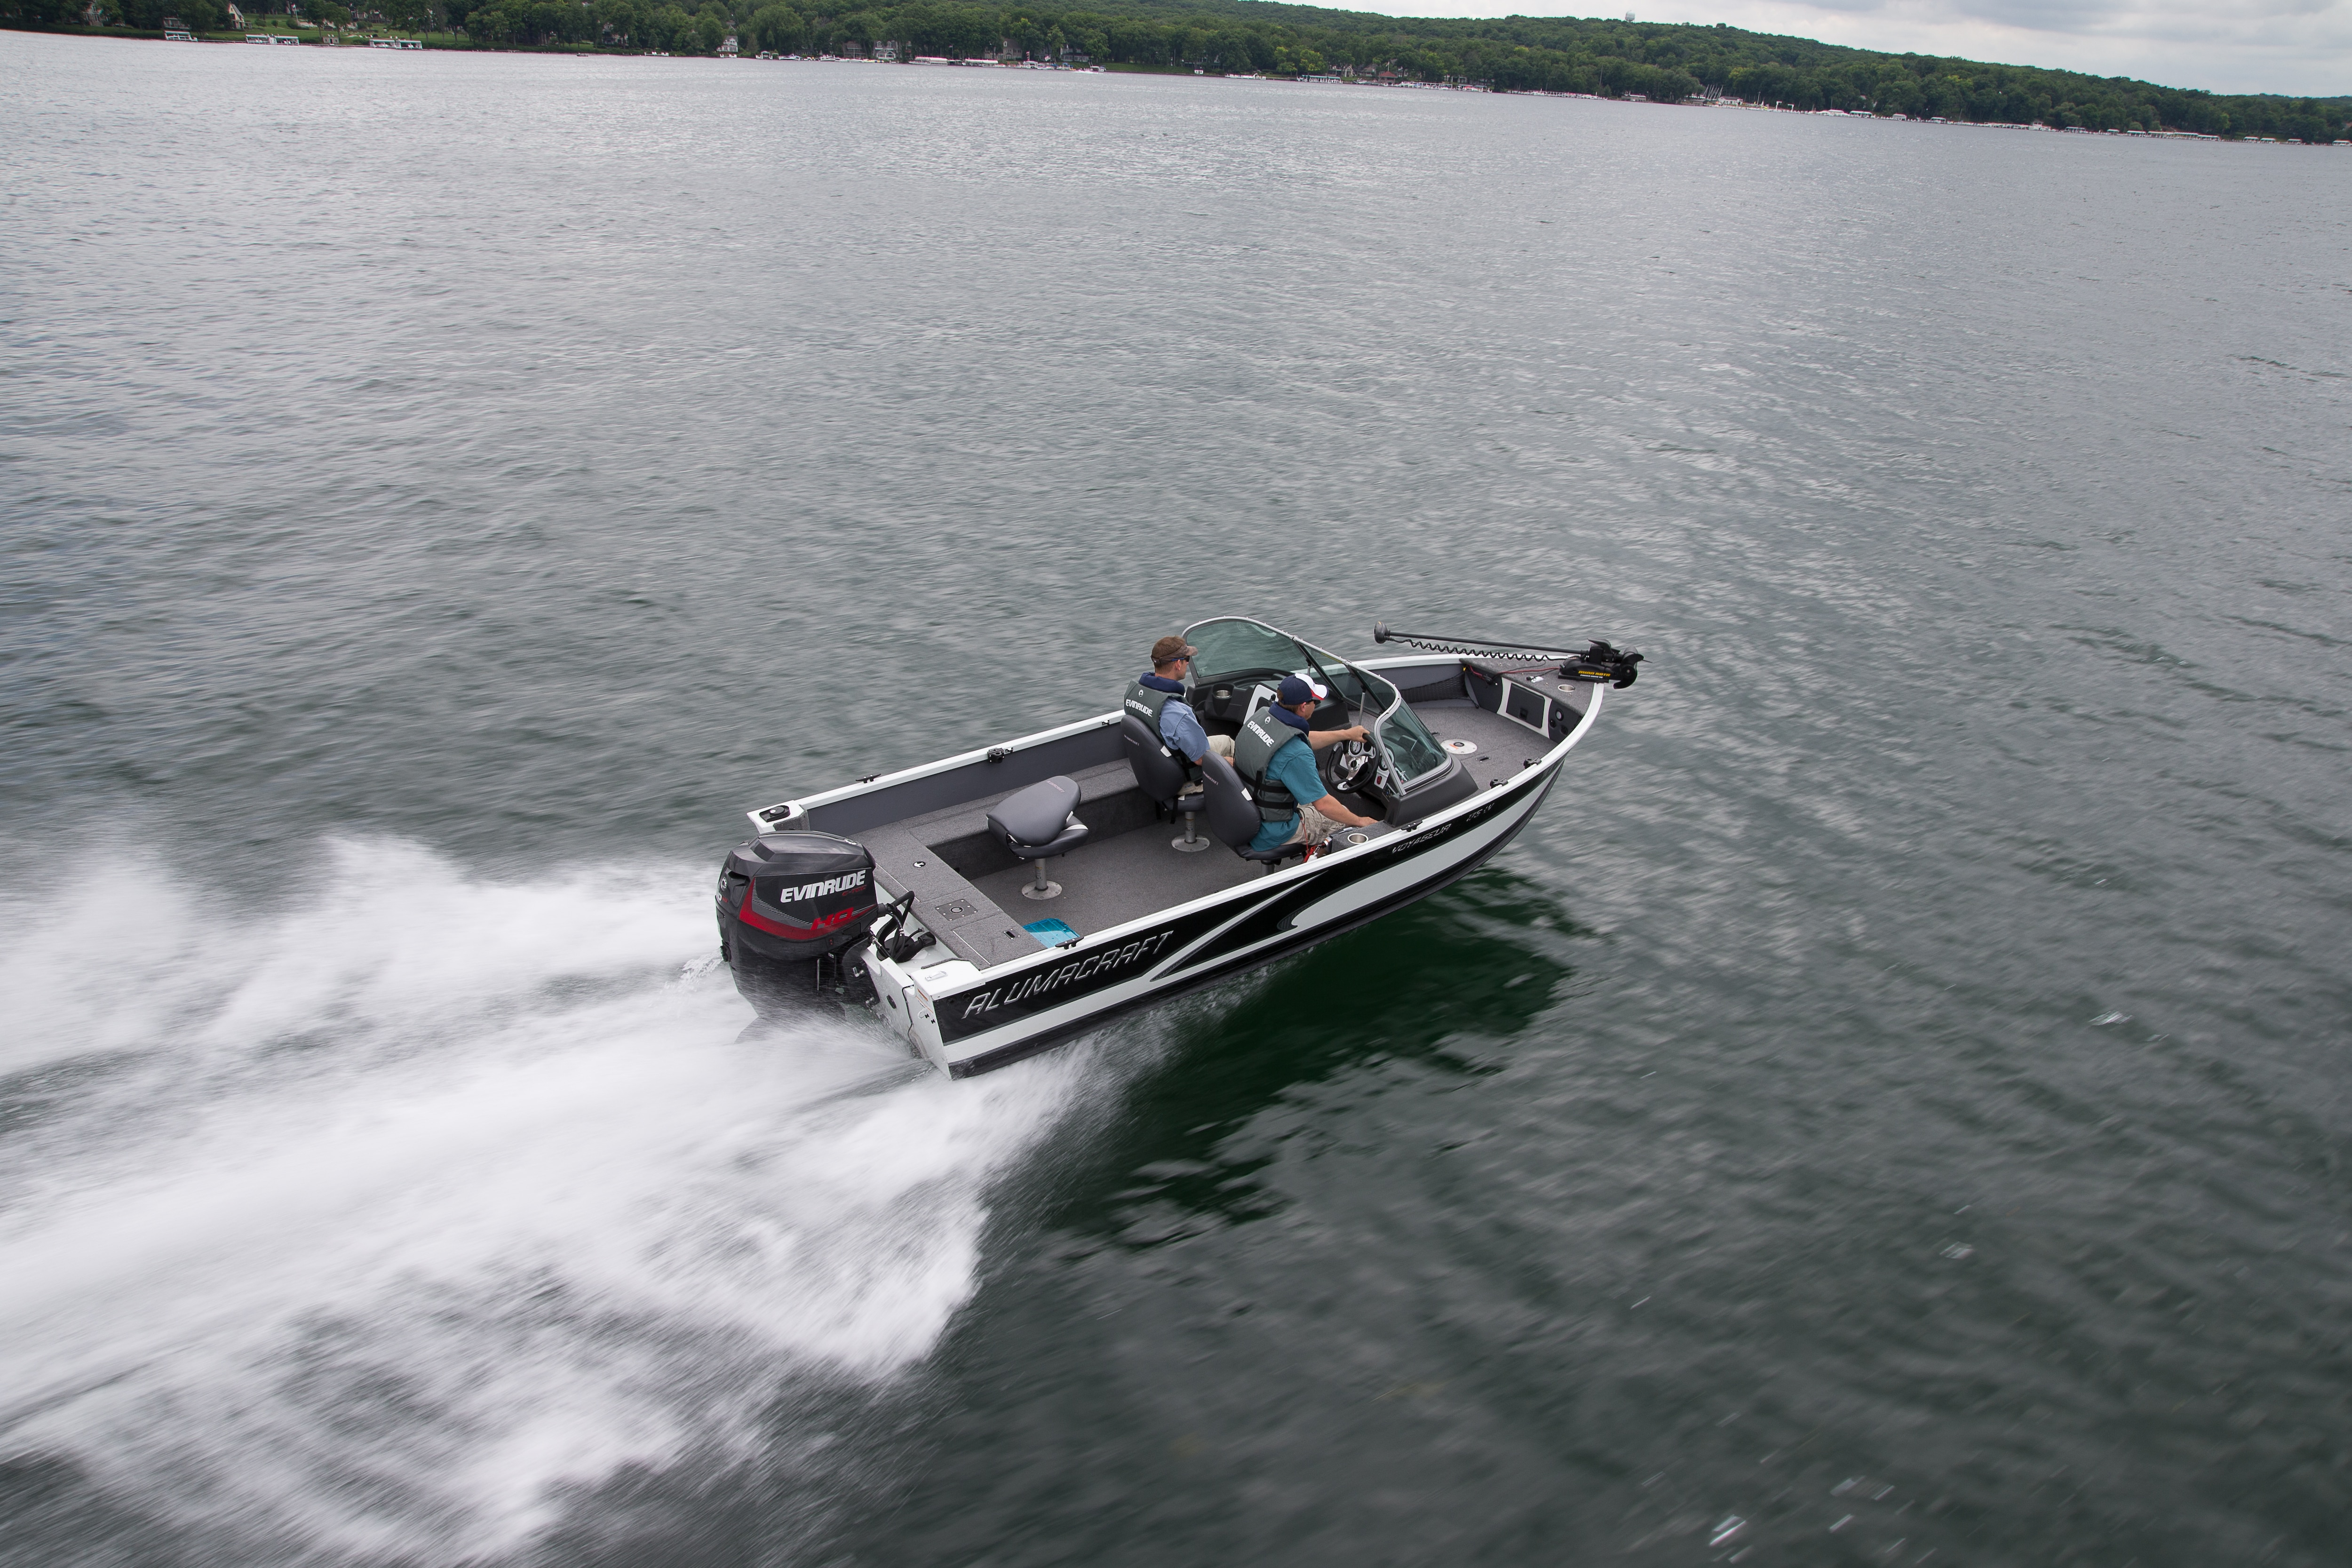 Alumacraft boat yielding an Evinrude motor